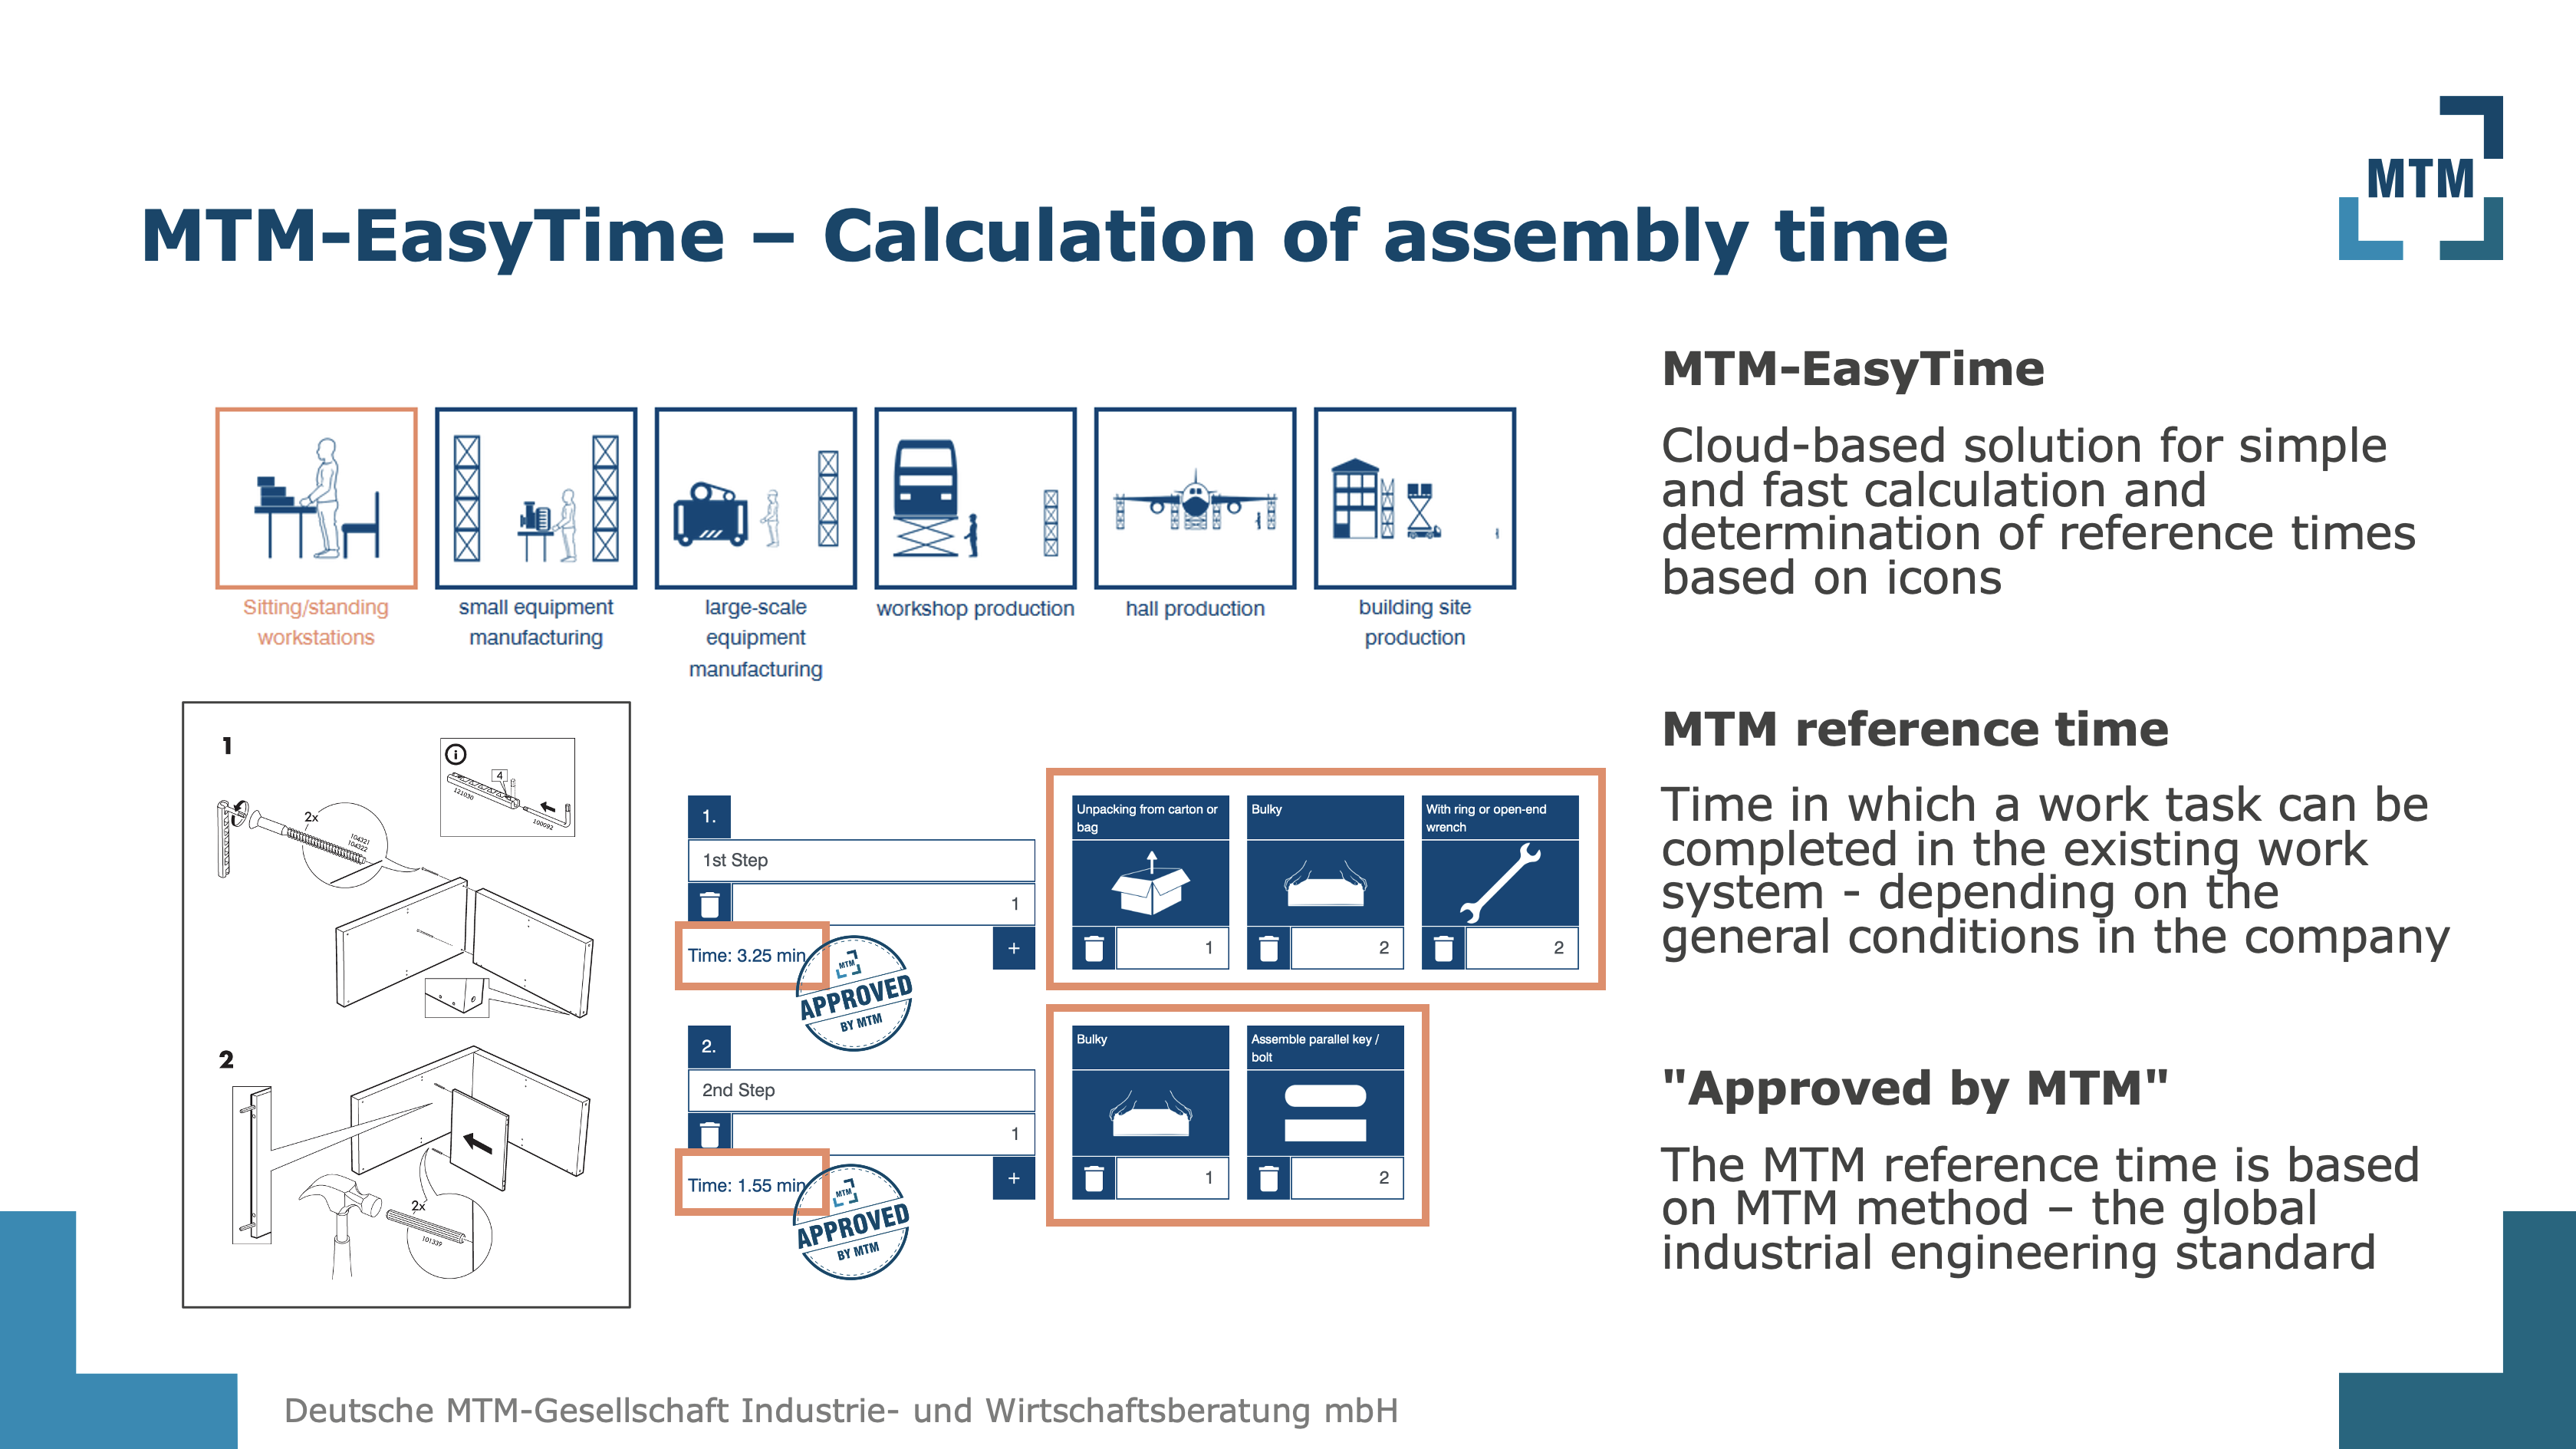 Calculation of assembly time